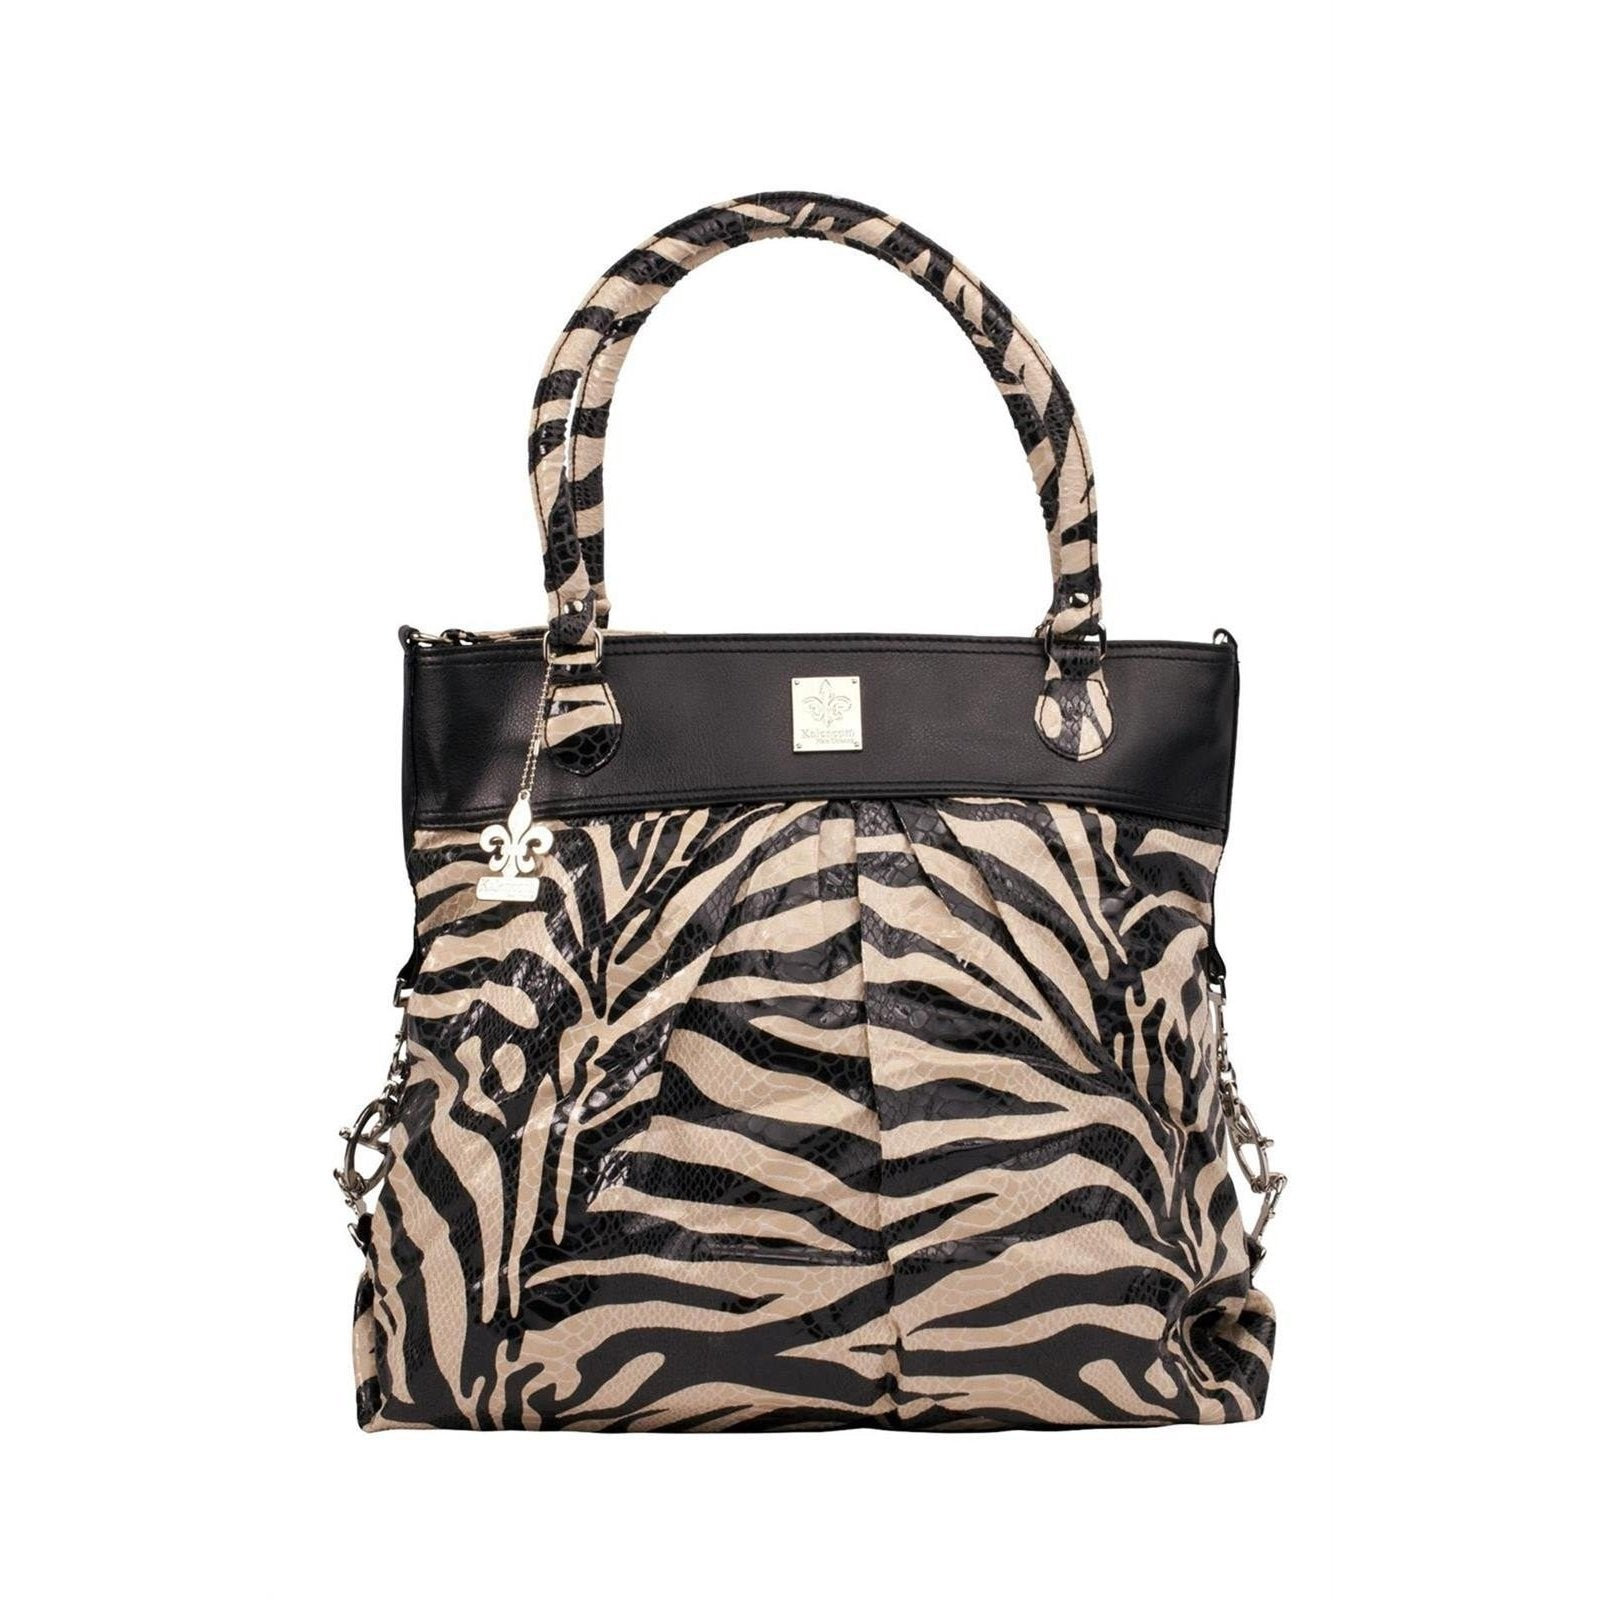 Tiger Black & Cream City Slick - On The Wild Side Diaper Bag | Style 2918 - Kalencom-Diaper Bags-Default-Jack and Jill Boutique